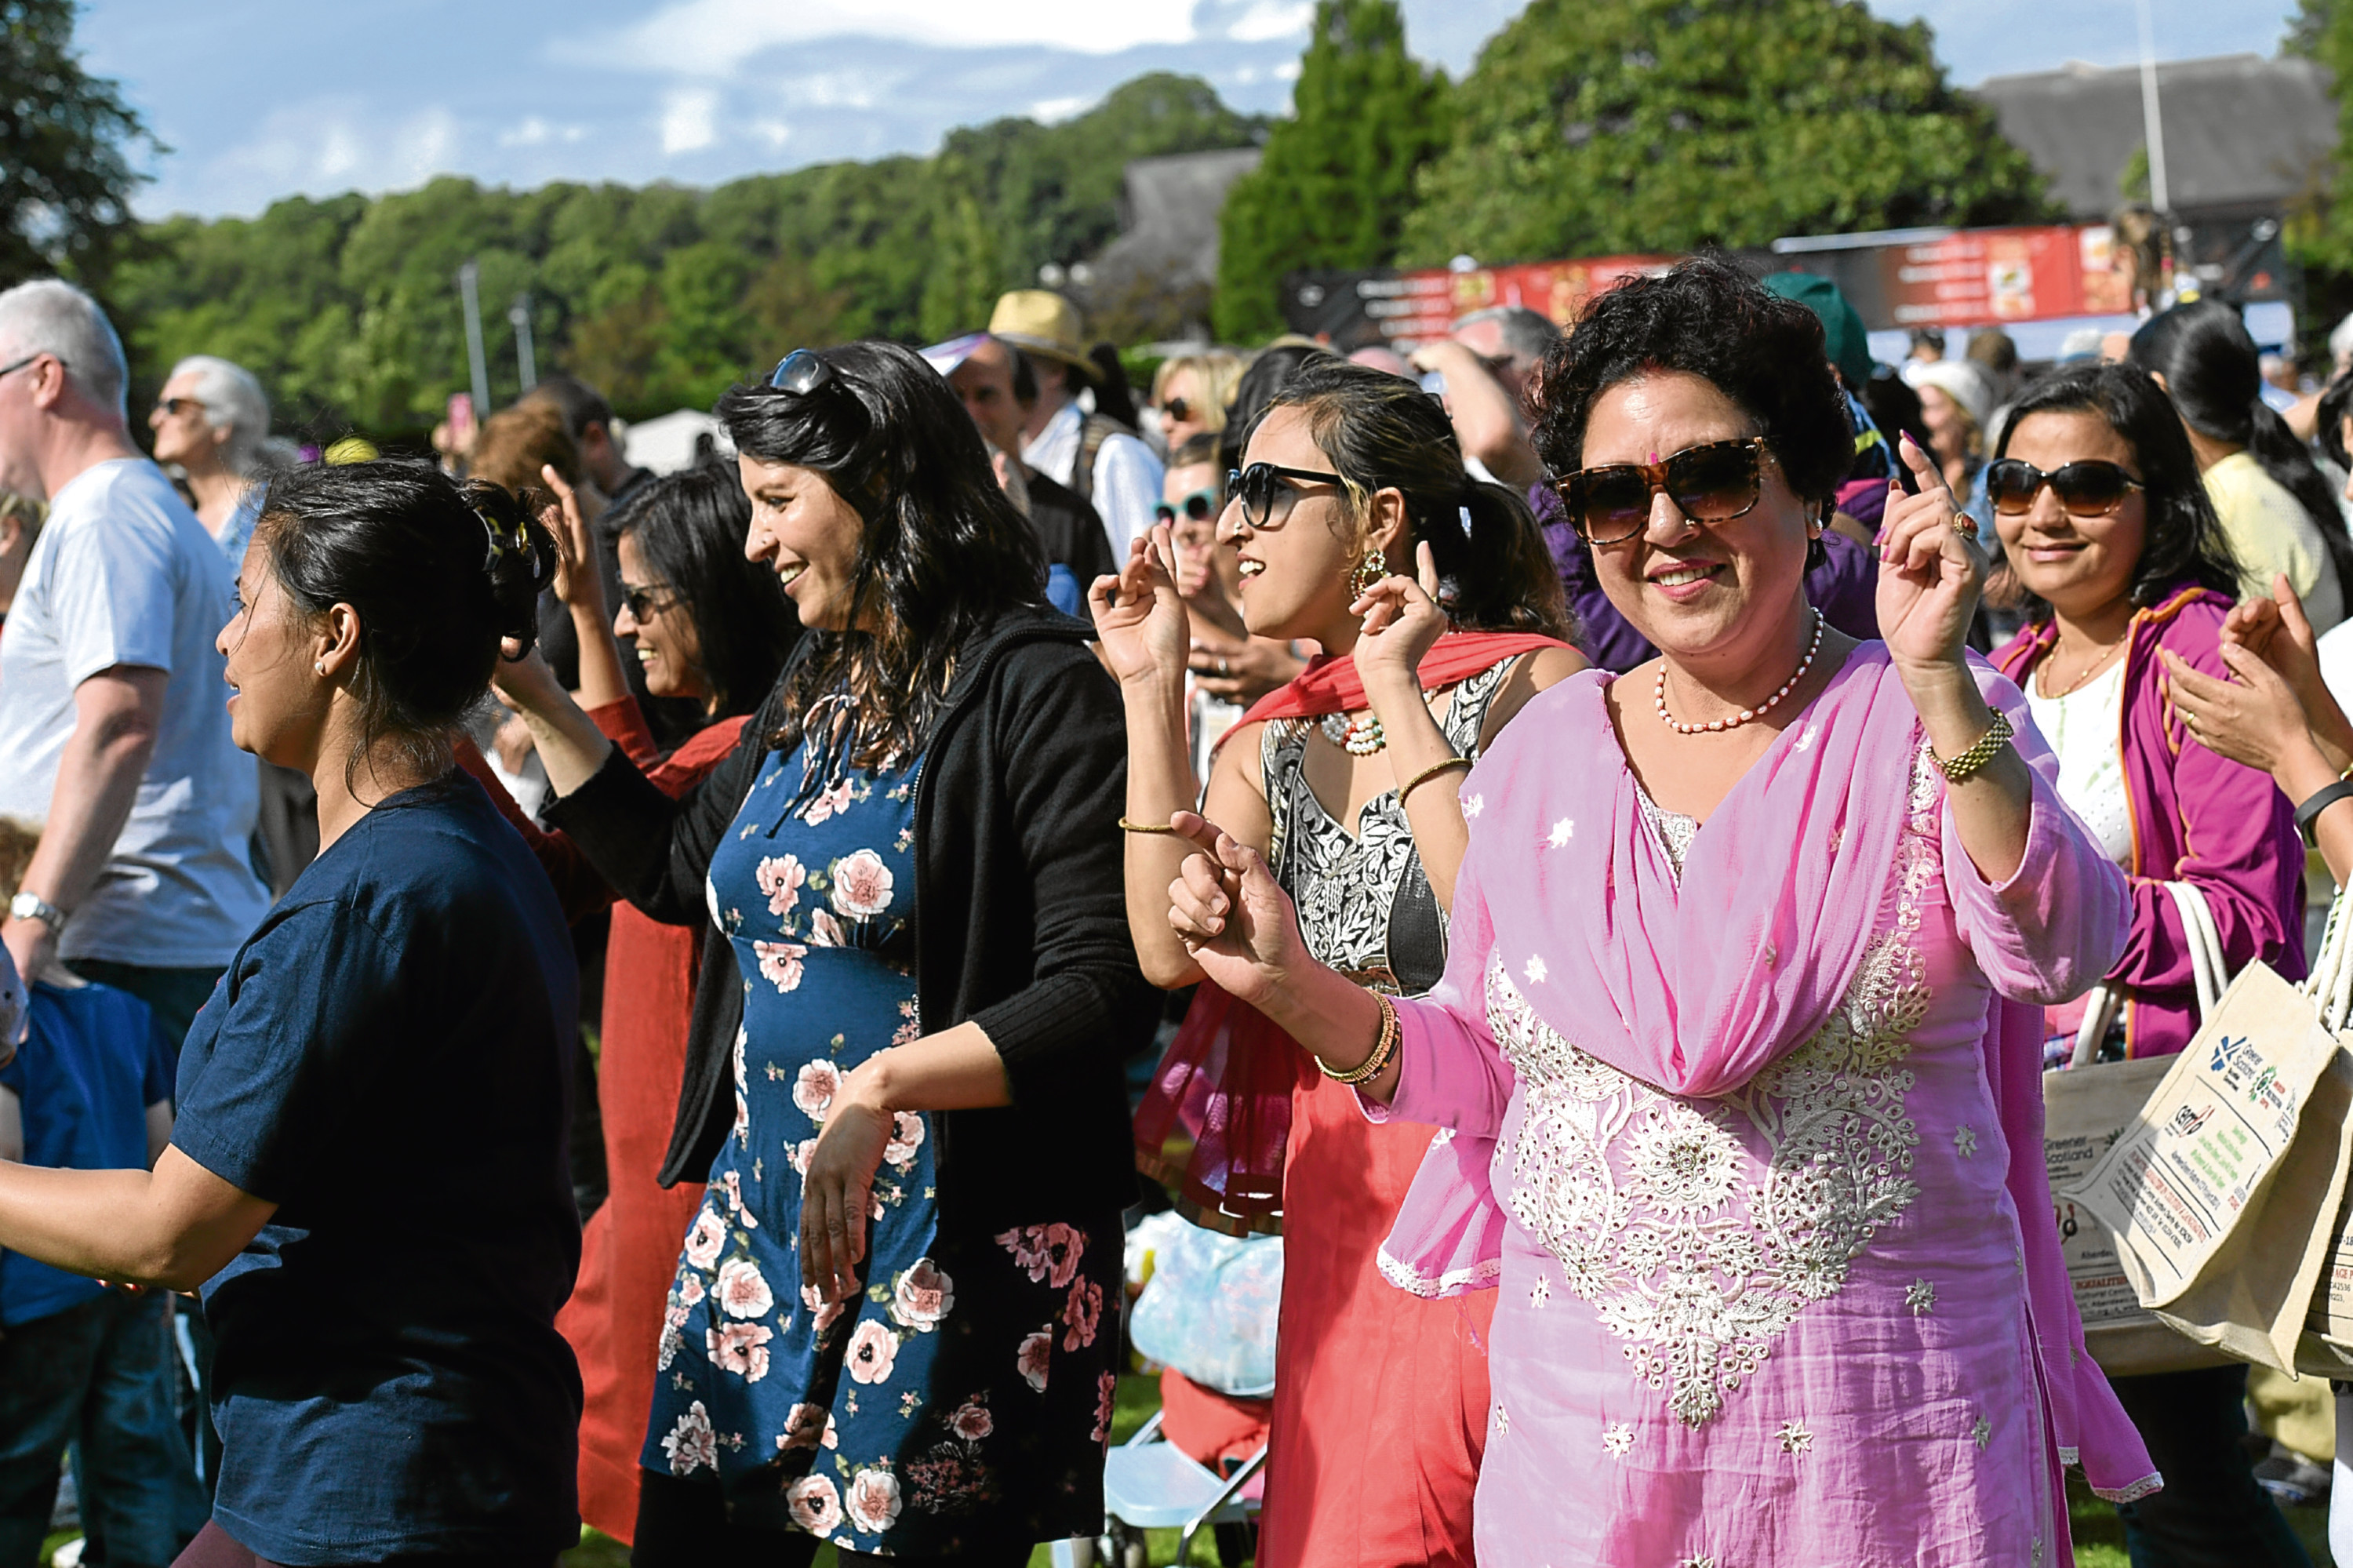 MELA Festival at Westburn Park.  30/07/17. Picture by KATH FLANNERY